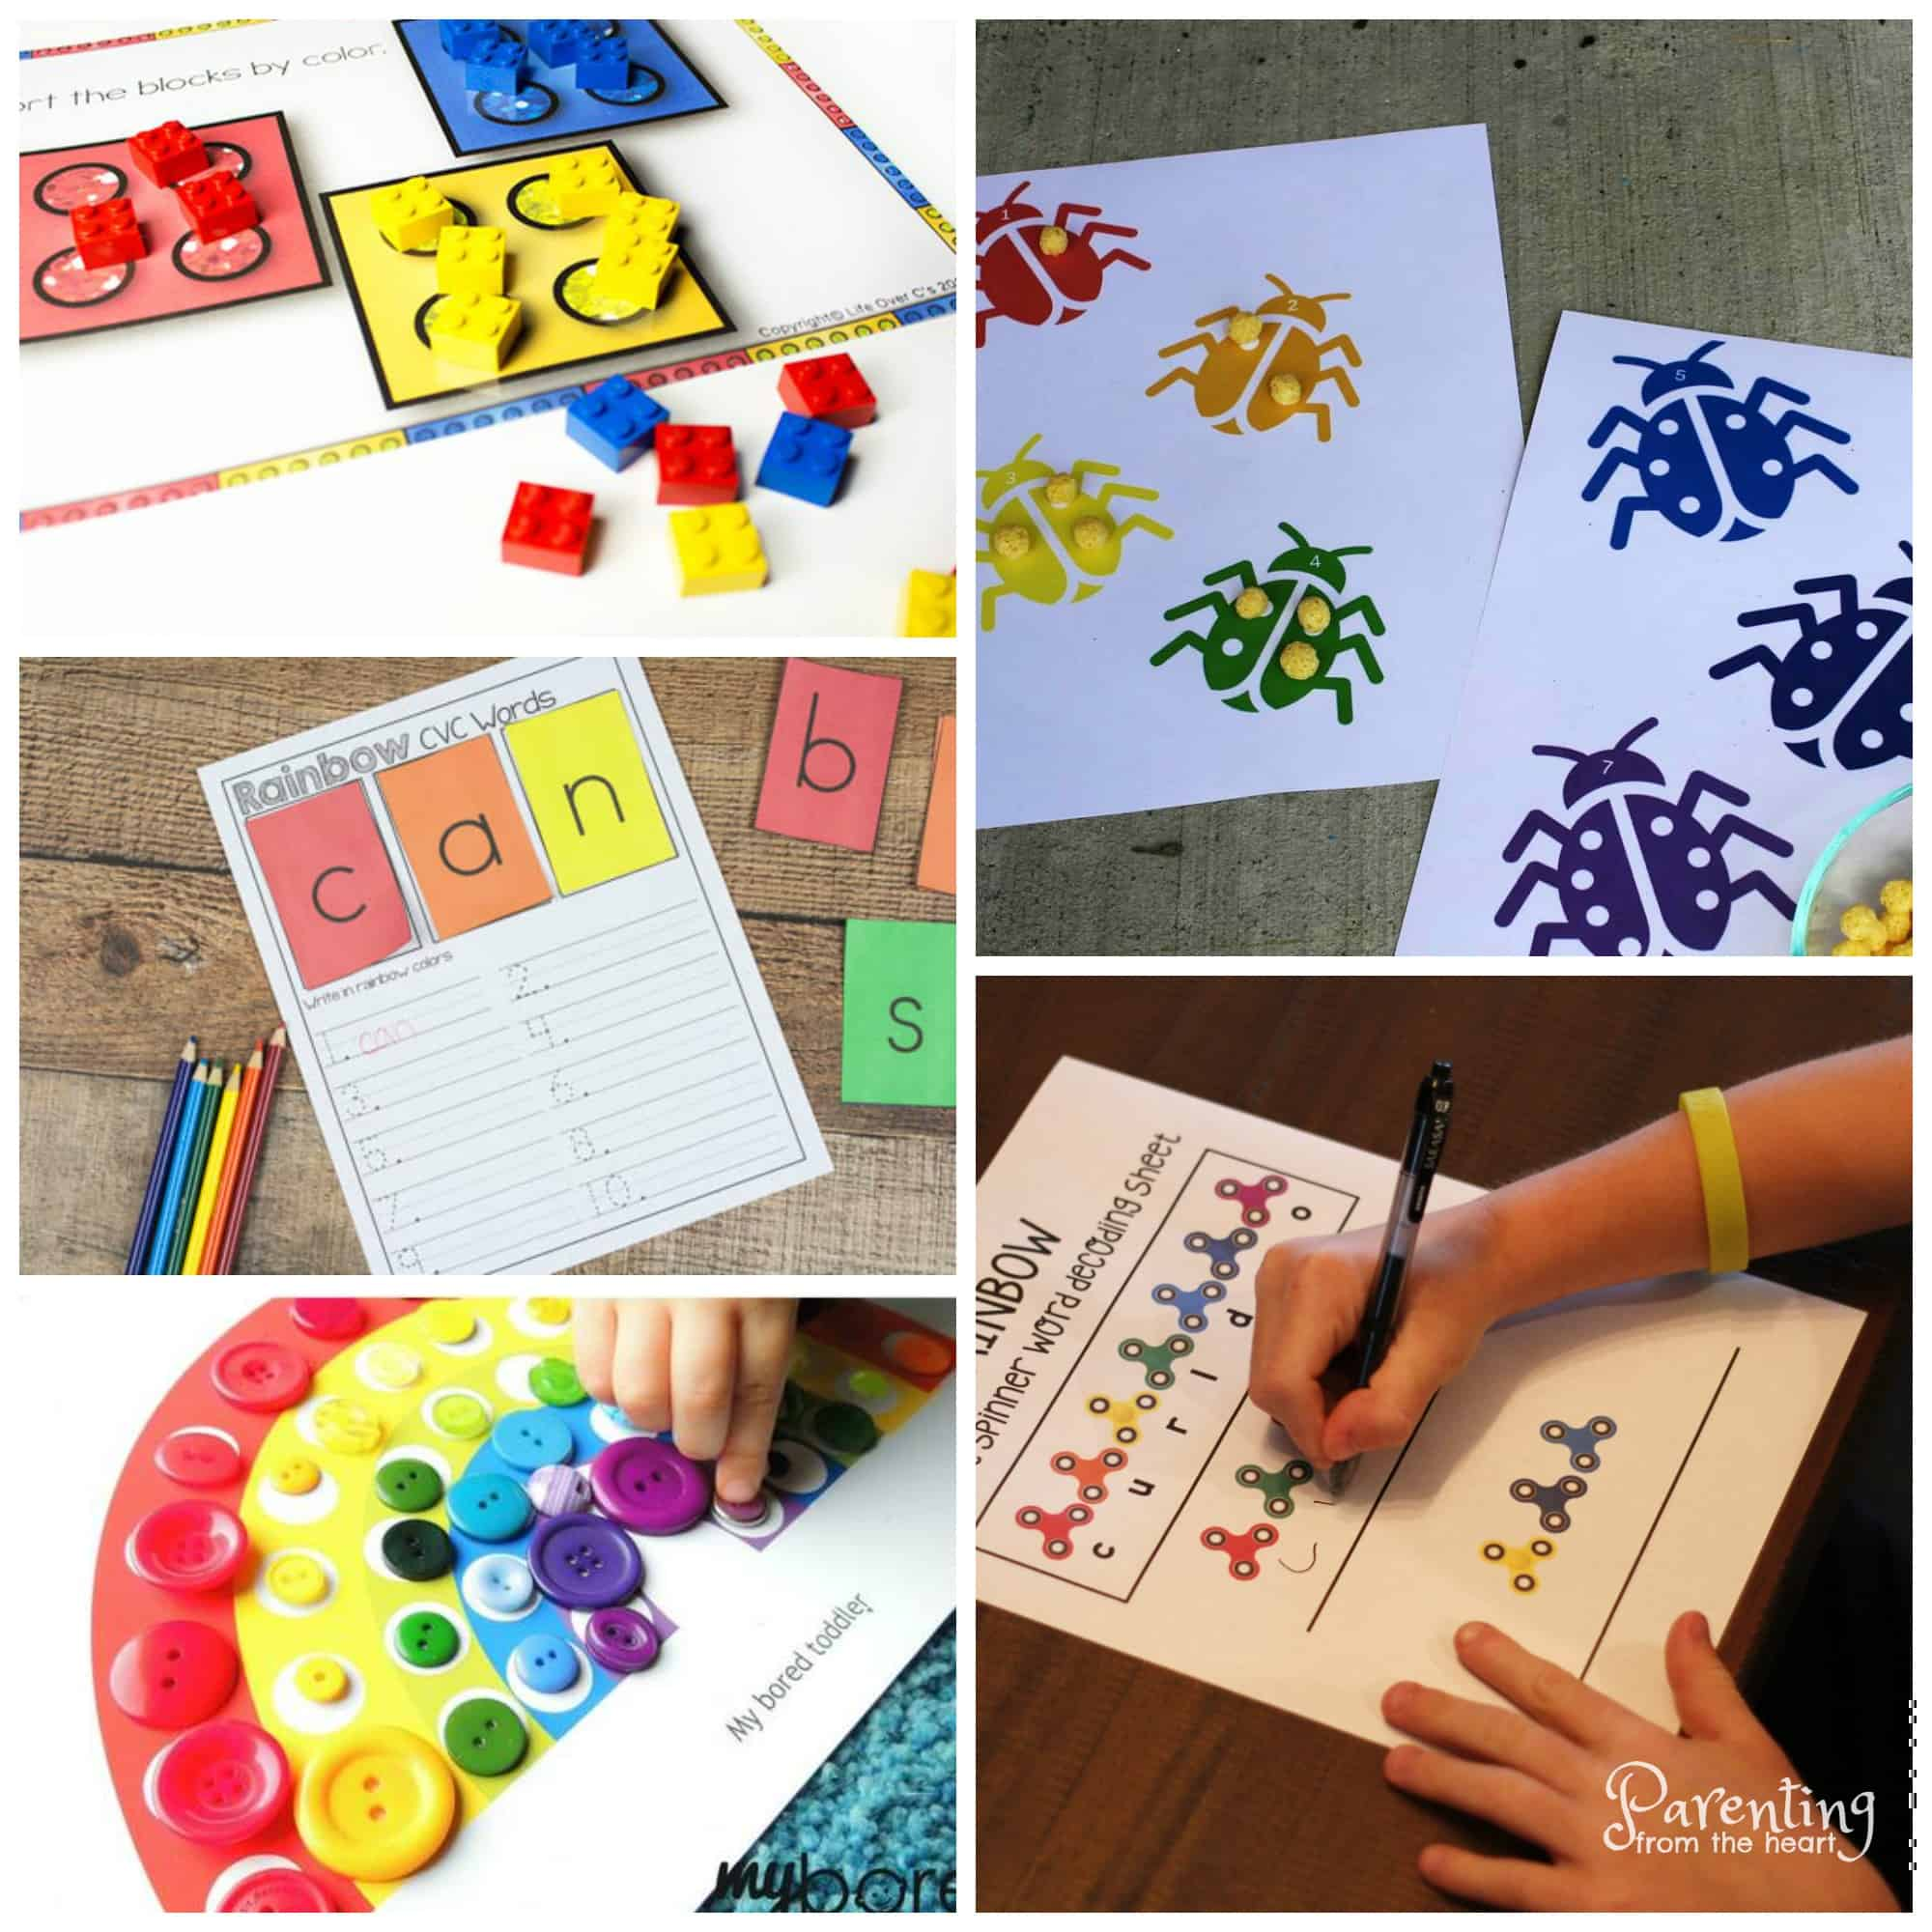 Get fun play-based learning ideas with these rainbow printables for preschoolers. These preschool worksheets are fun, free and are great to promote numeracy, literacy, fine motor and gross motor skills!